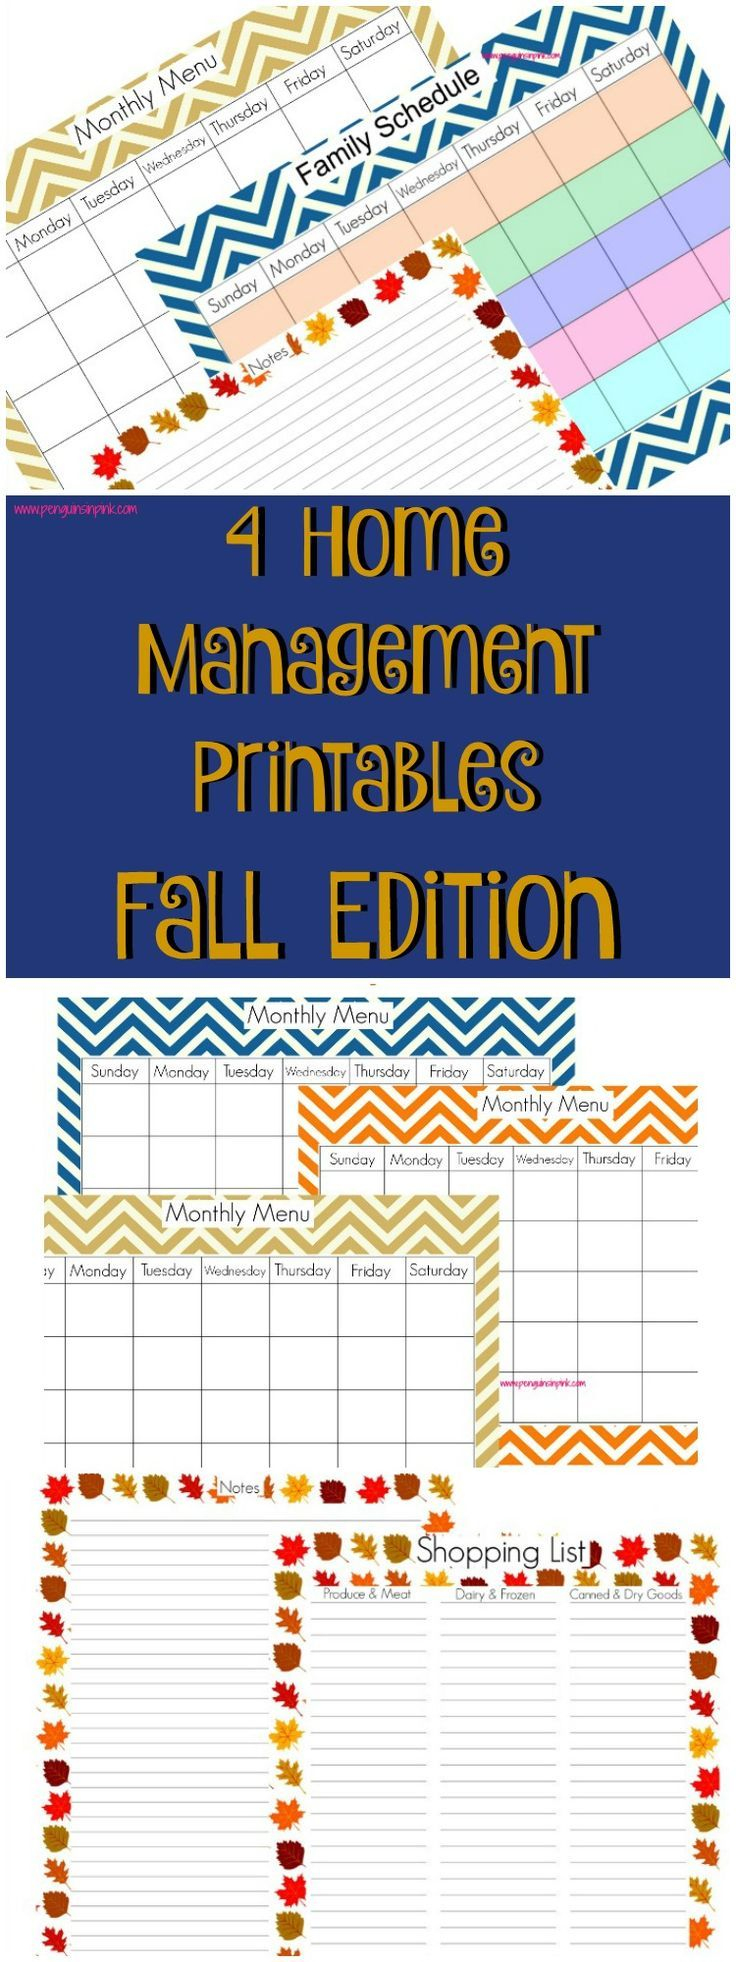 Monthly menu, shopping list, family schedule, and notes home management printables fall themed in navy, orange, and wheat chevron and leaves to keep your house organized this fall.